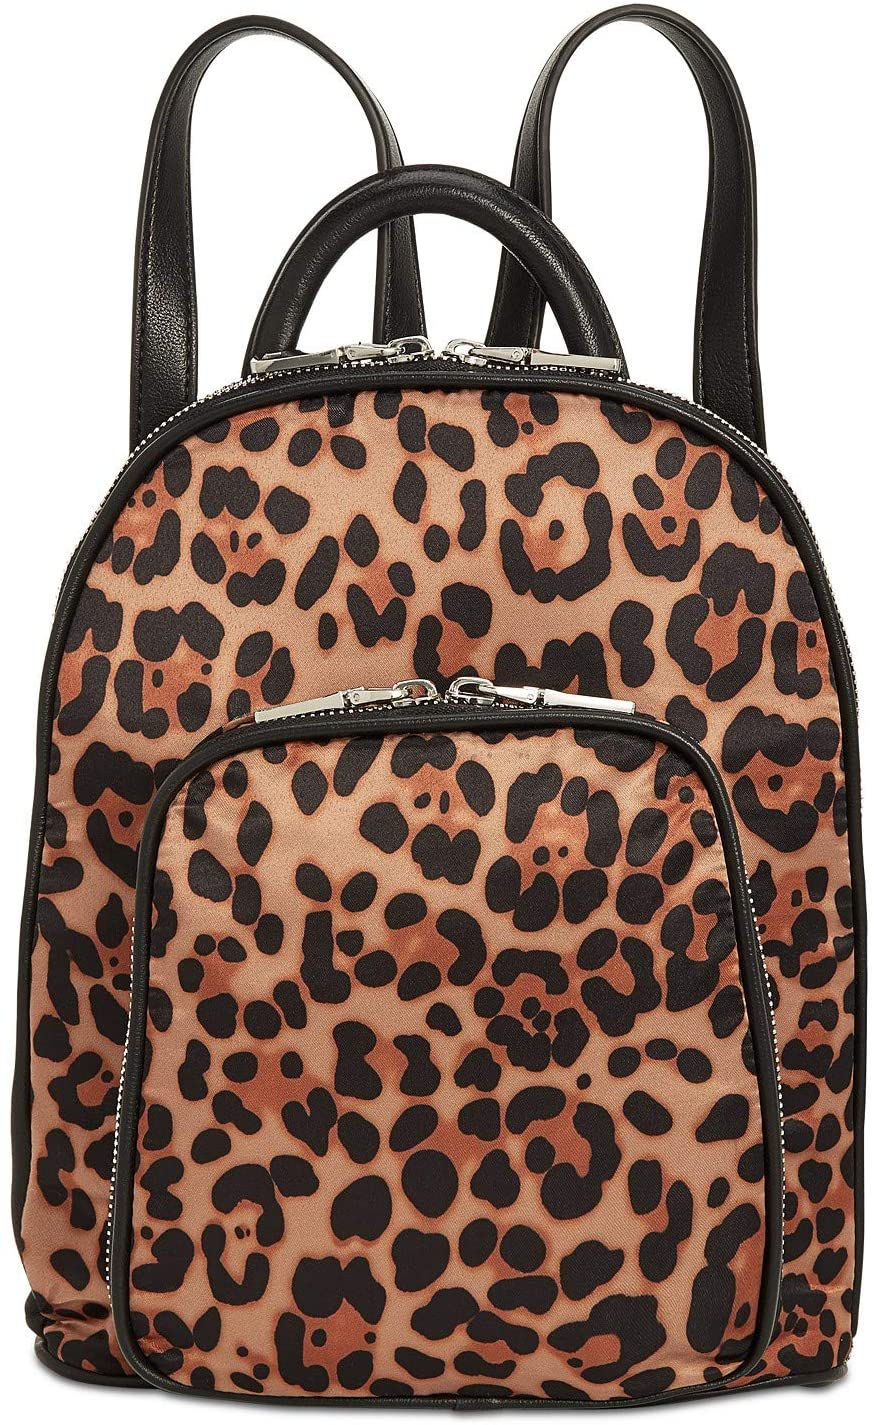 INC Womens Farahh Leopard Print Faux Leather Trim Backpack Tan O/S